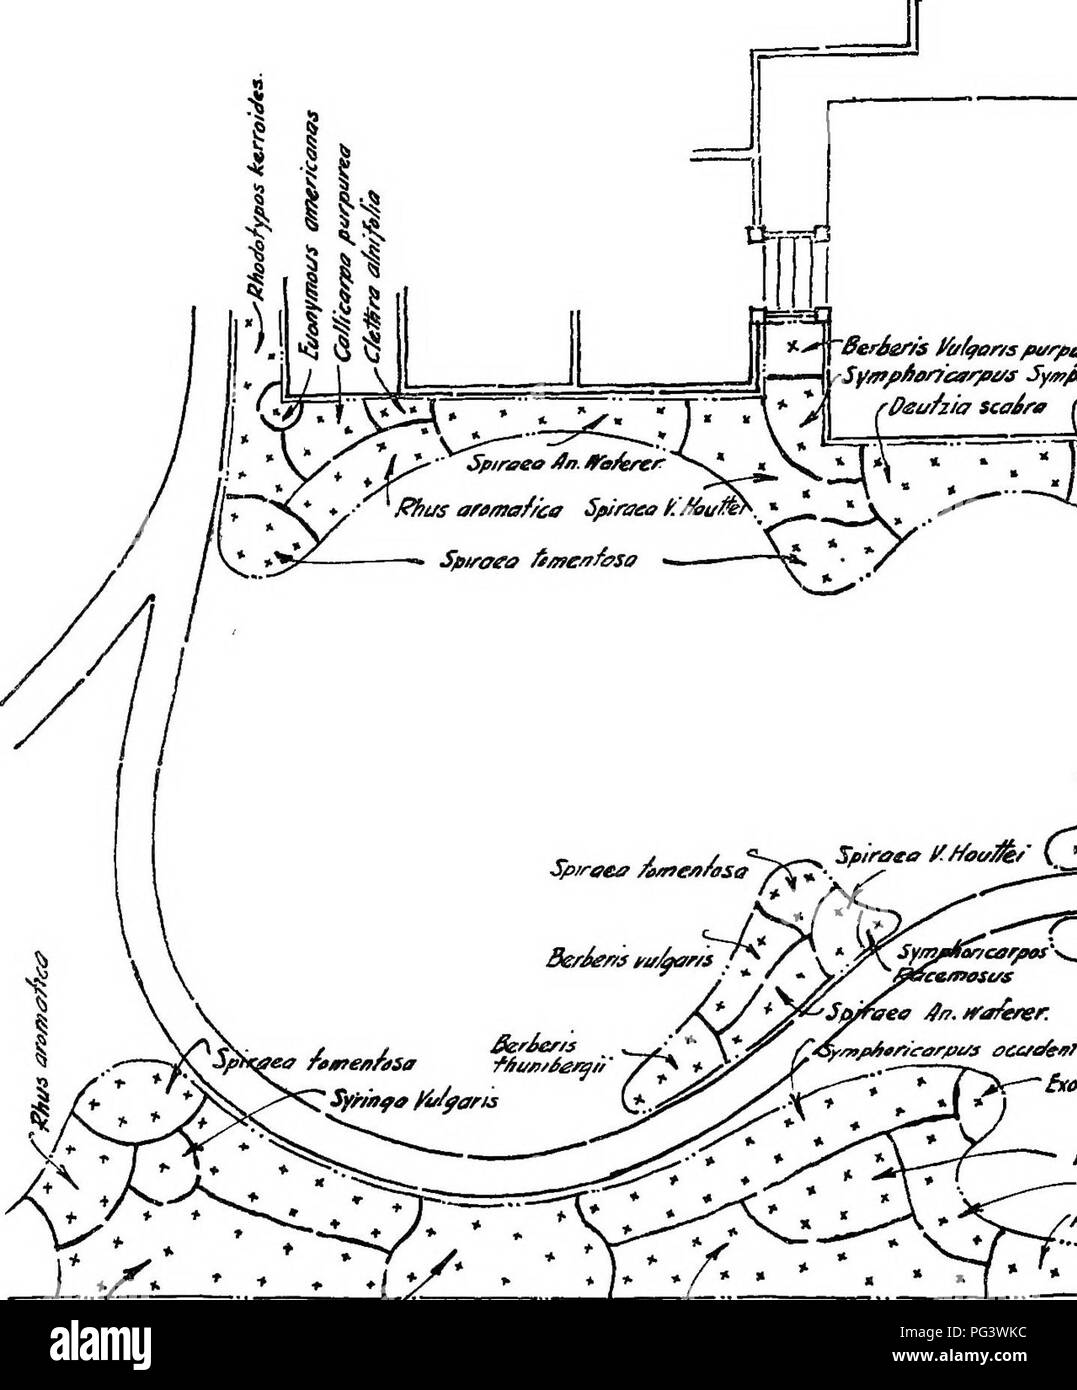 . Design in landscape gardening. Landscape gardening. Sfr/nfa pertice (Fe/syTltia /n^trme^ia ^ Spirveo prun/^/« Figure 43. PLAN FOE THE DEVE]. Please note that these images are extracted from scanned page images that may have been digitally enhanced for readability - coloration and appearance of these illustrations may not perfectly resemble the original work.. Root, Ralph Rodney; Kelley, Charles Fabens, b. 1885. New York, The Century Co. Stock Photo